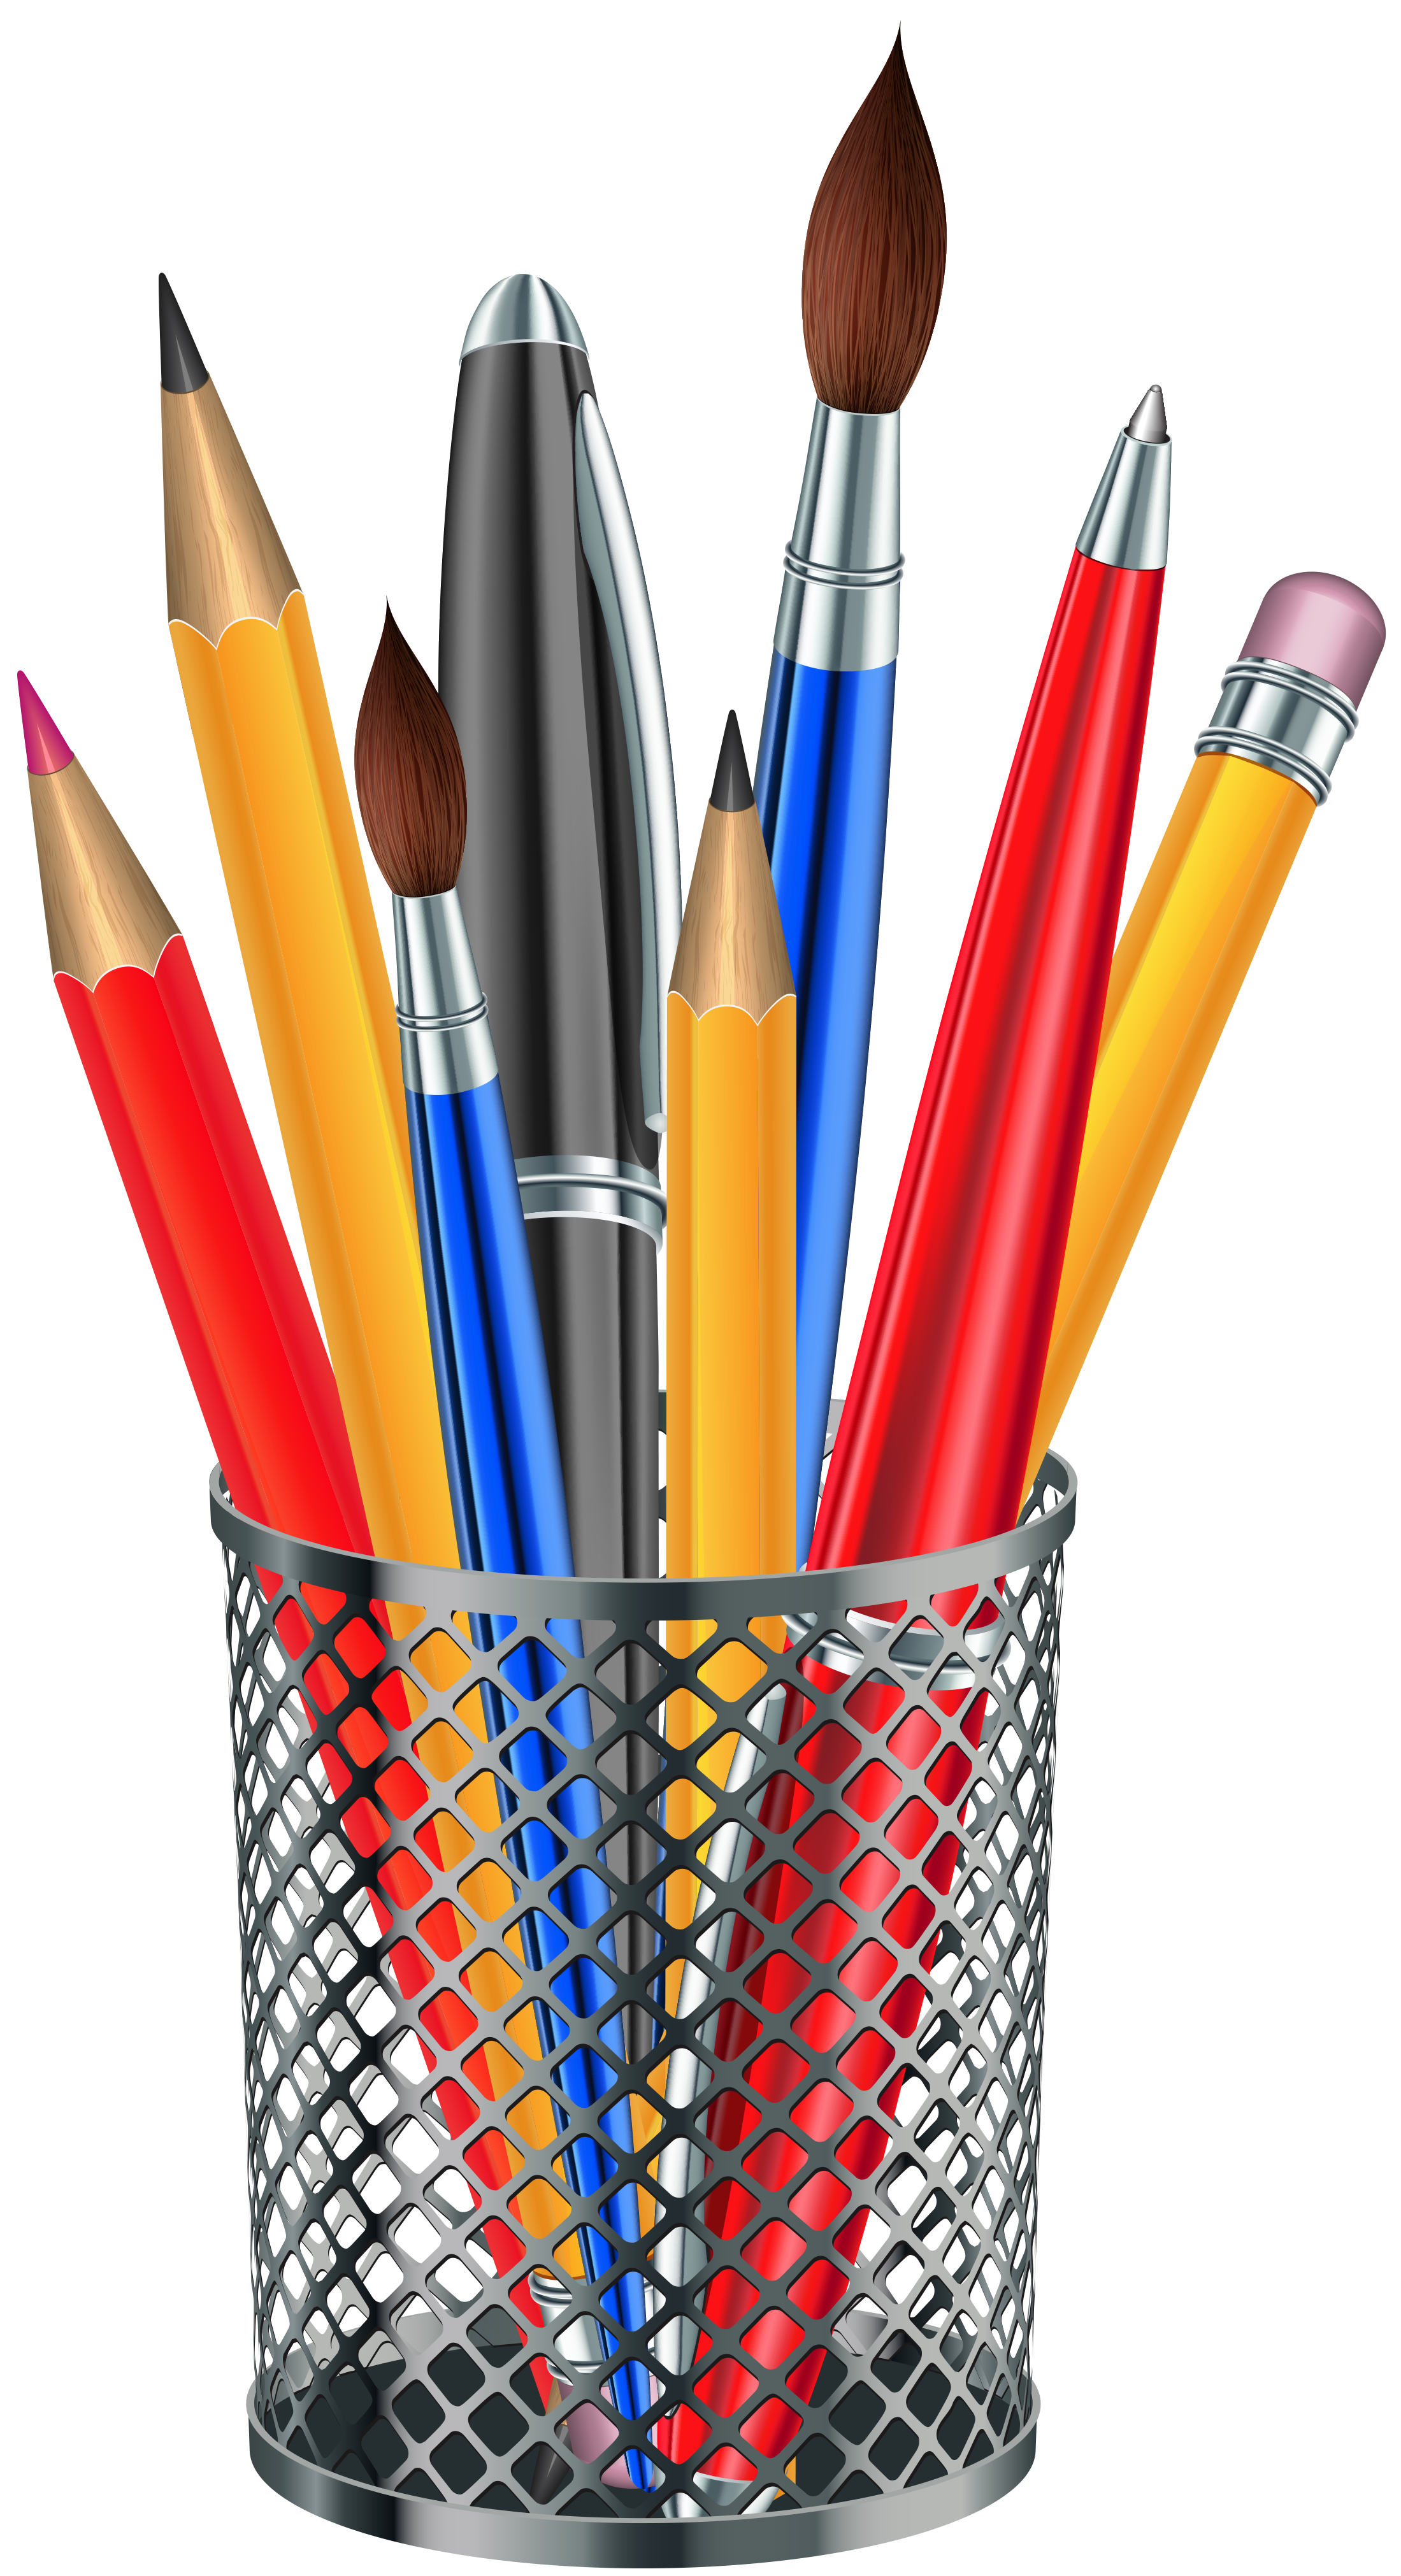 School clipart no background clipart free stock School Supplies Background Png. School Supplies Background Png With ... clipart free stock